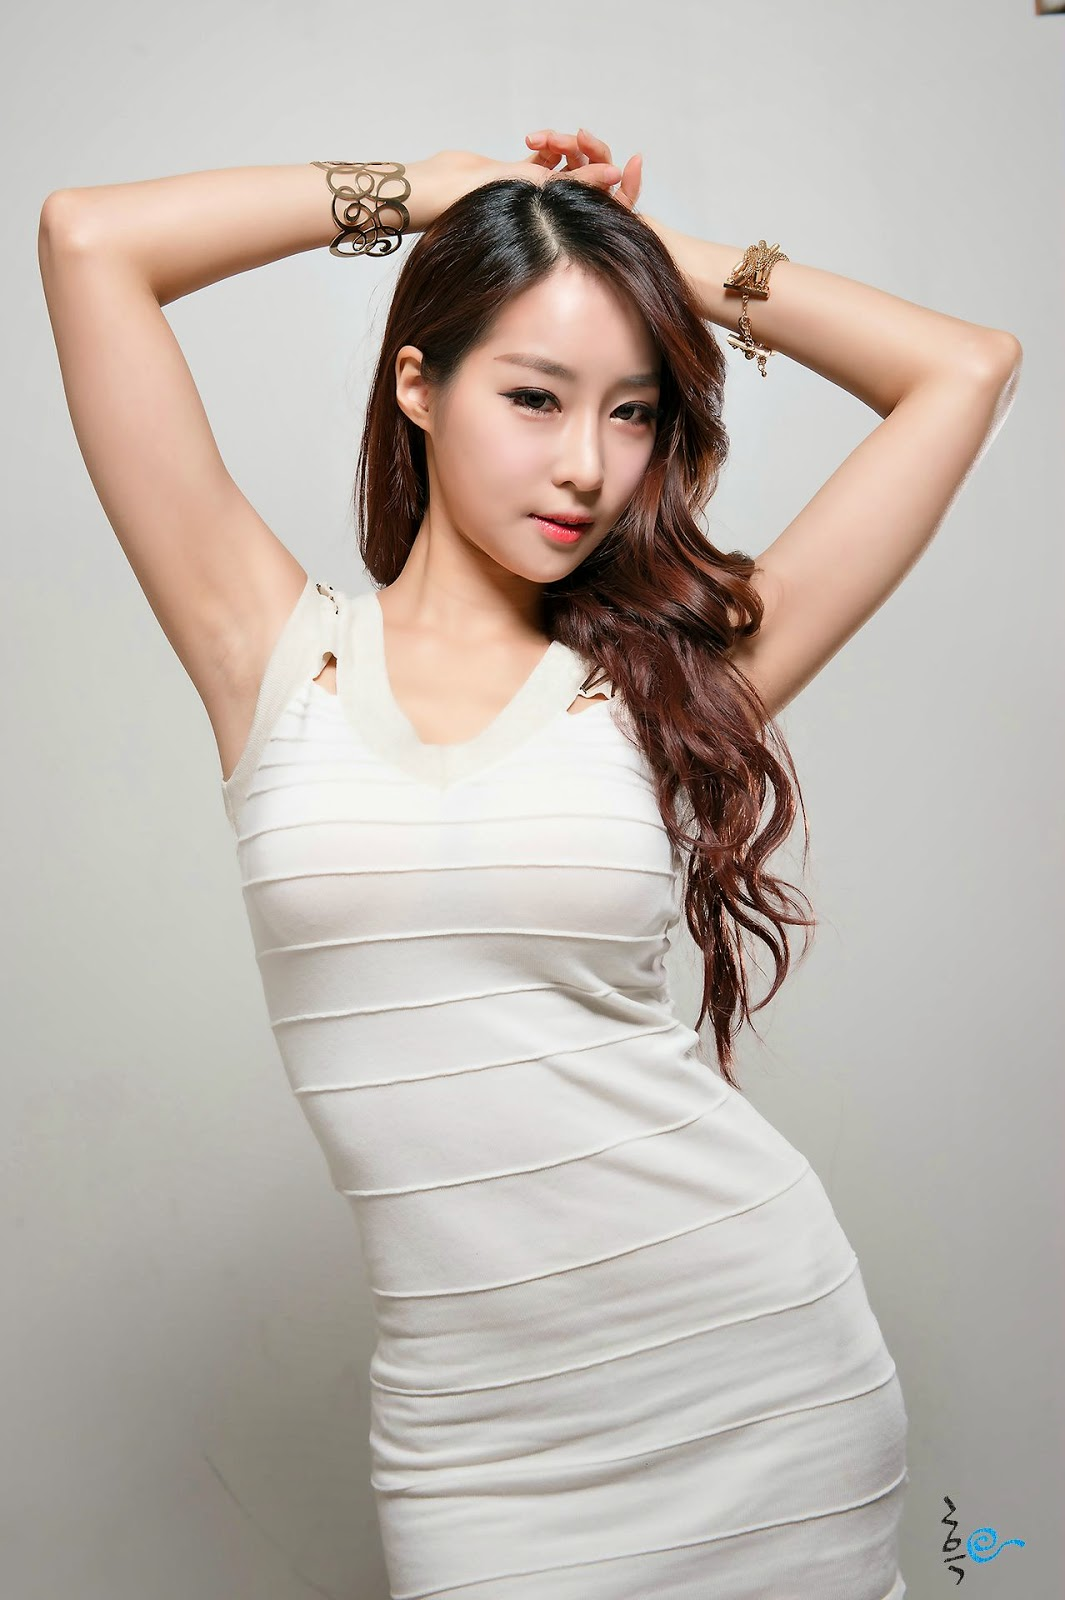 4 Eun Ji Ye - Two small sets - very cute asian girl-girlcute4u.blogspot.com